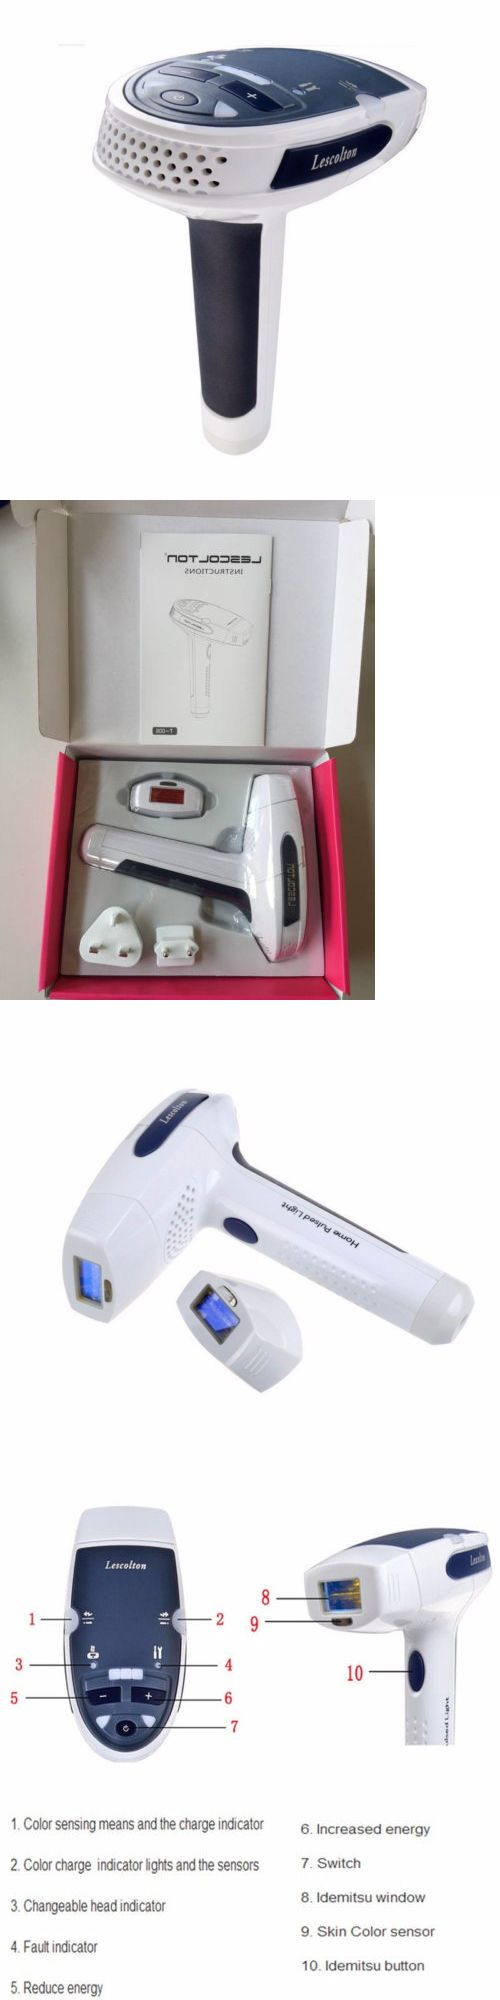 Laser Hair Removal and IPL: Lescolton Laser Ipl Permanent Hair Removal Machine For Face And Body Home Use -> BUY IT NOW ONLY: $133.99 on eBay!